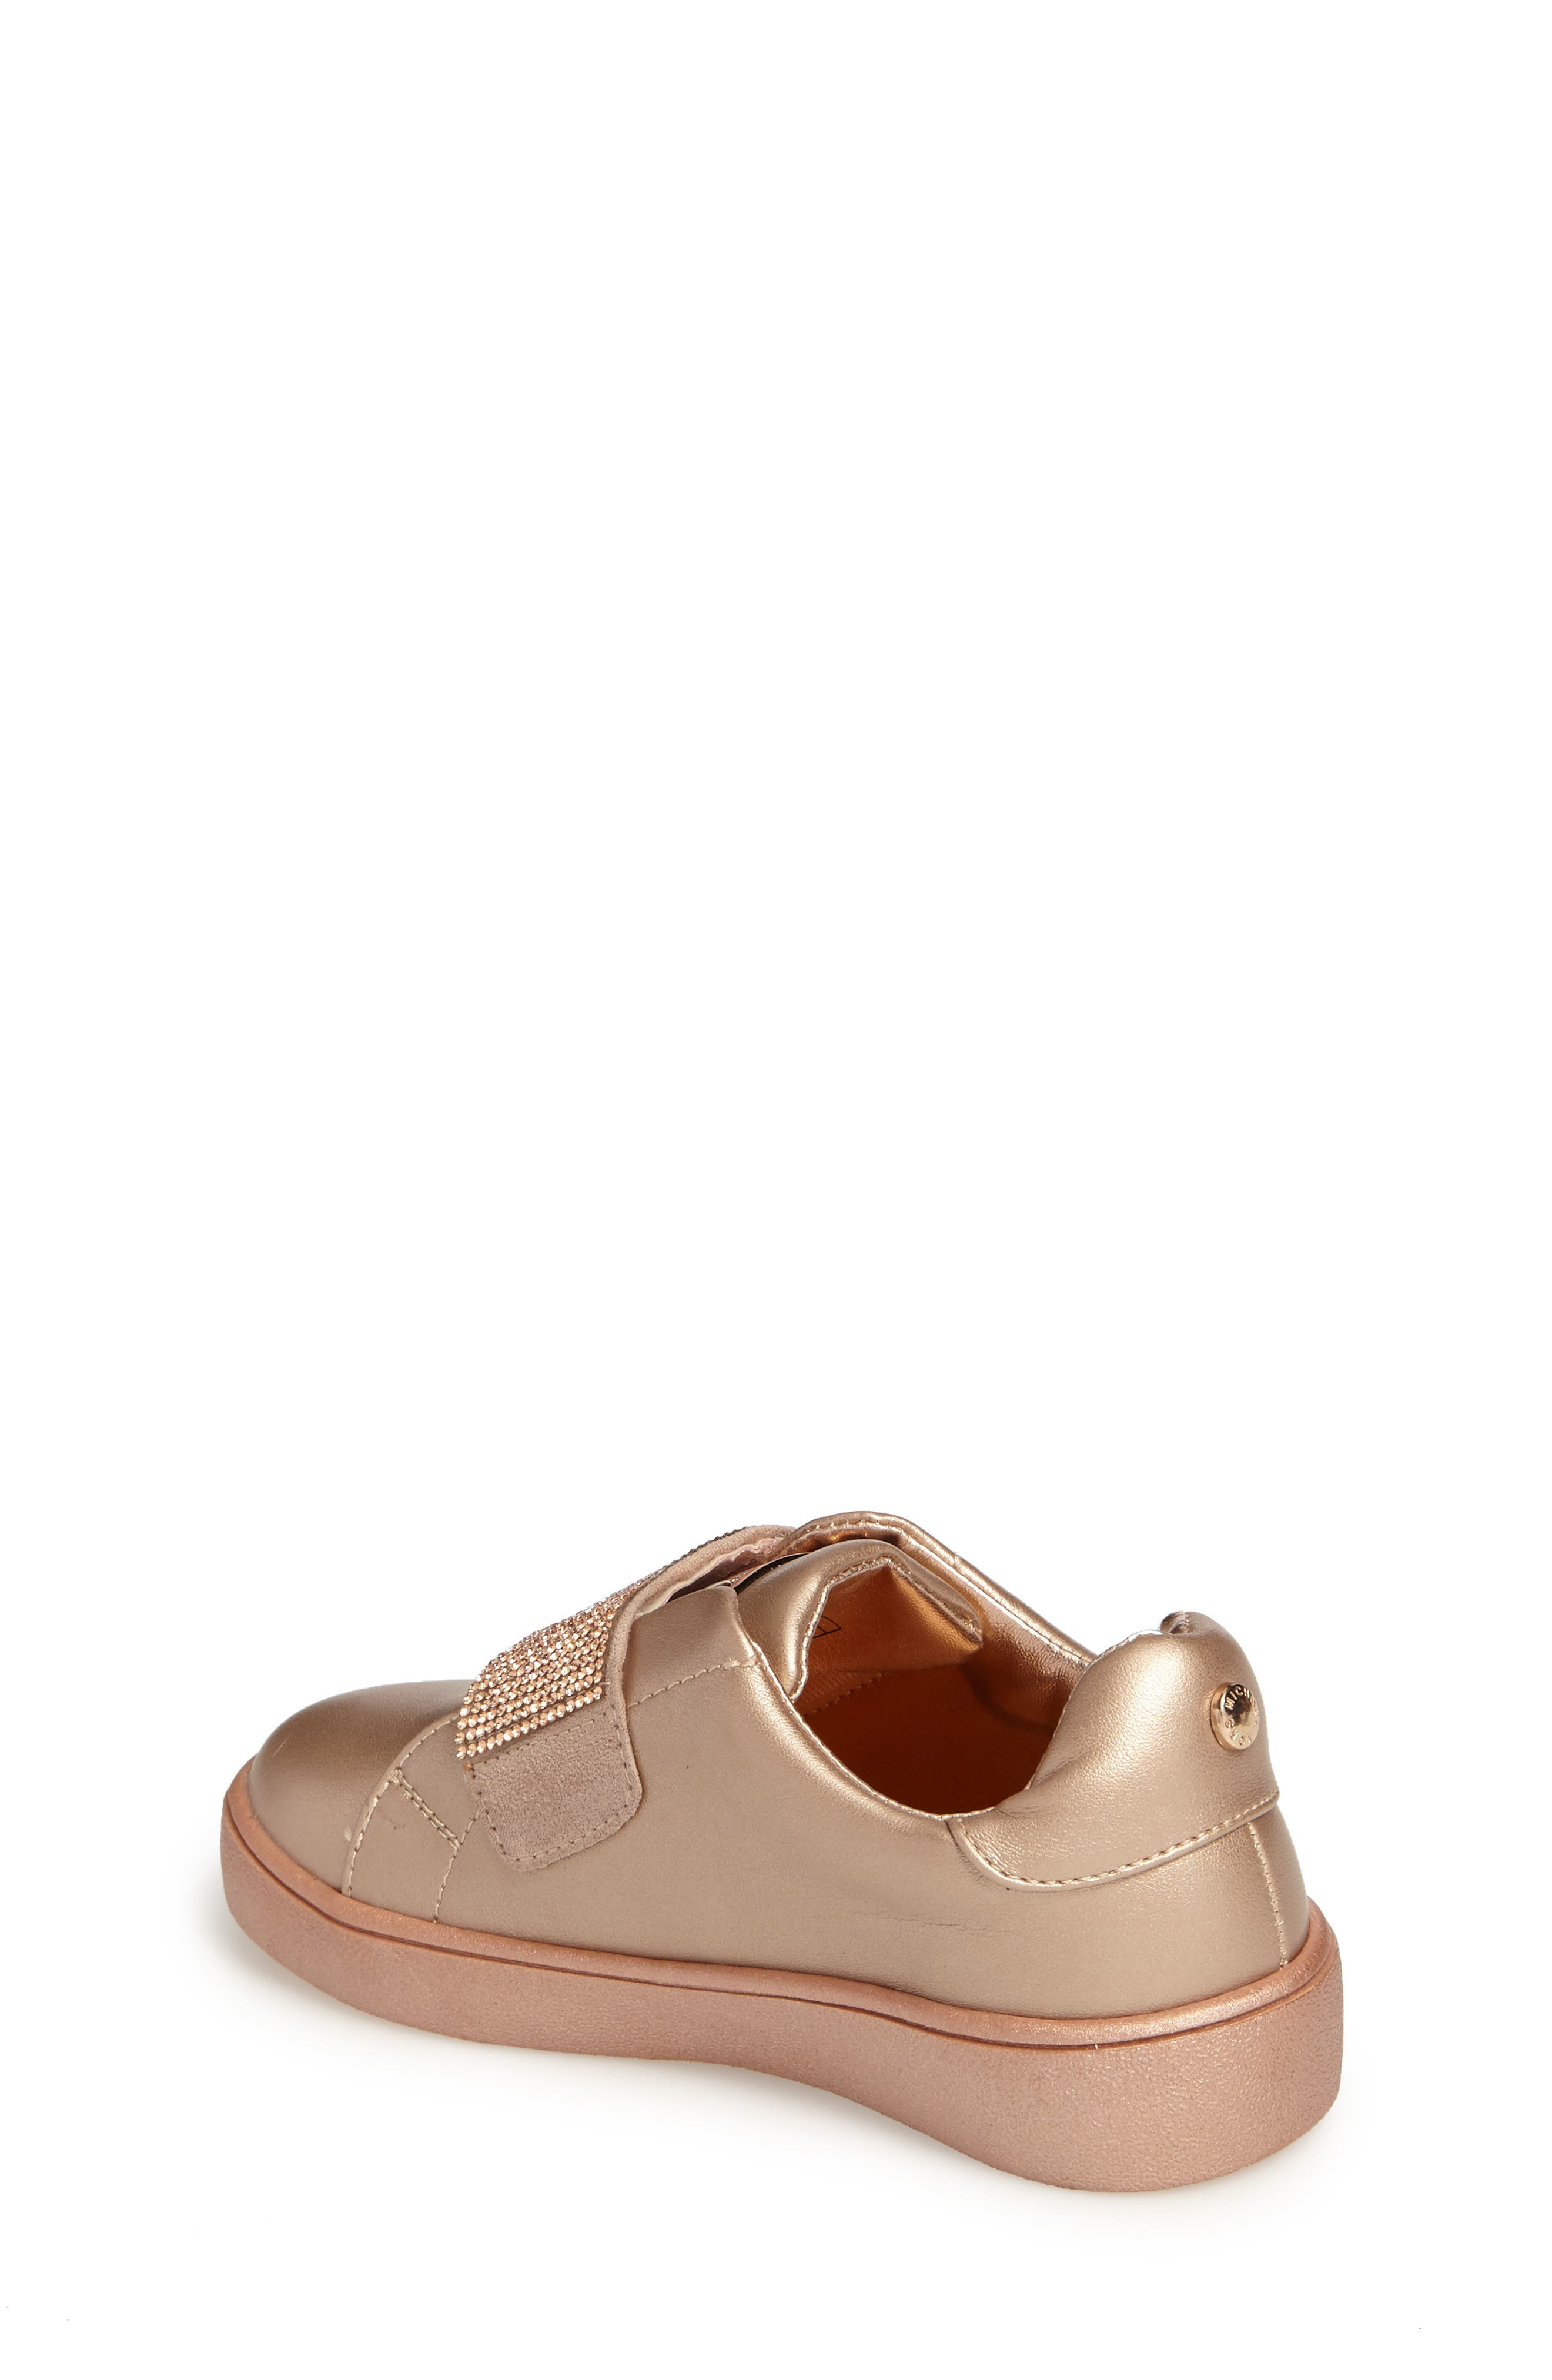 Ivy Candy Sneaker,                             Alternate thumbnail 5, color,